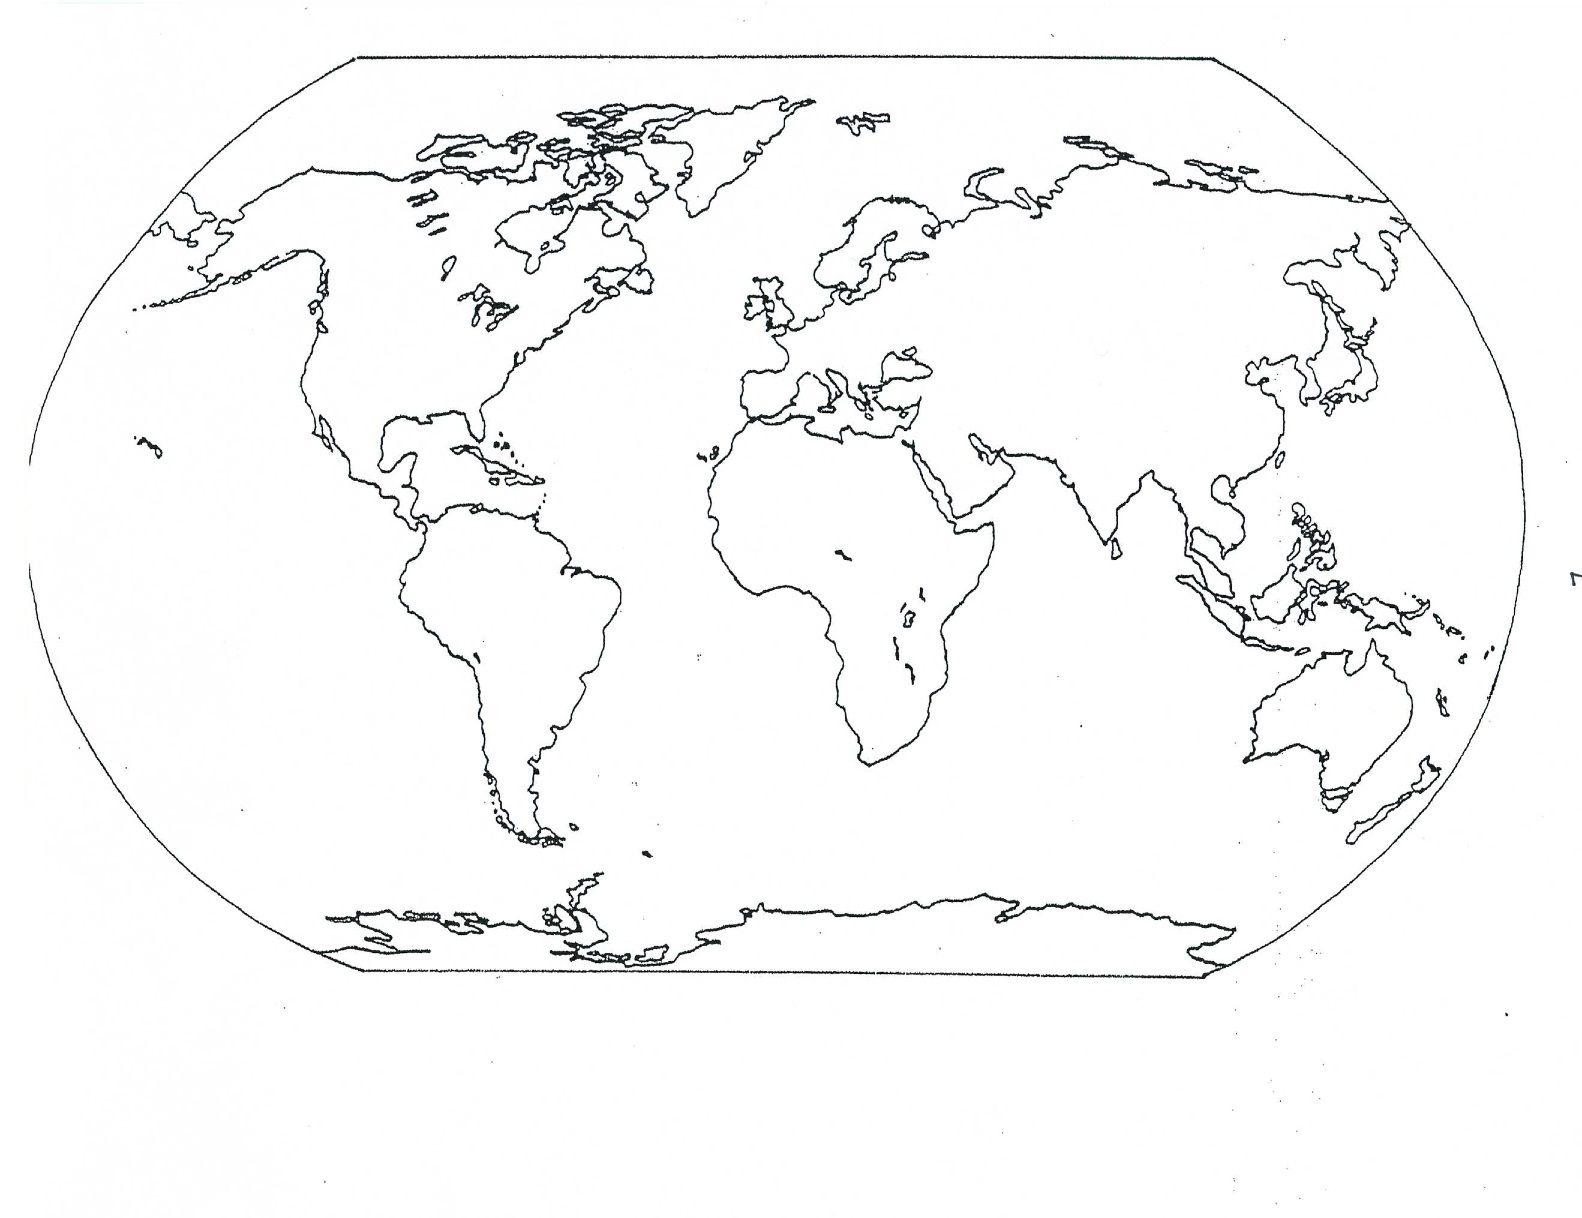 Free printable world map coloring pages for kids best coloring world map coloring page for kids gumiabroncs Images